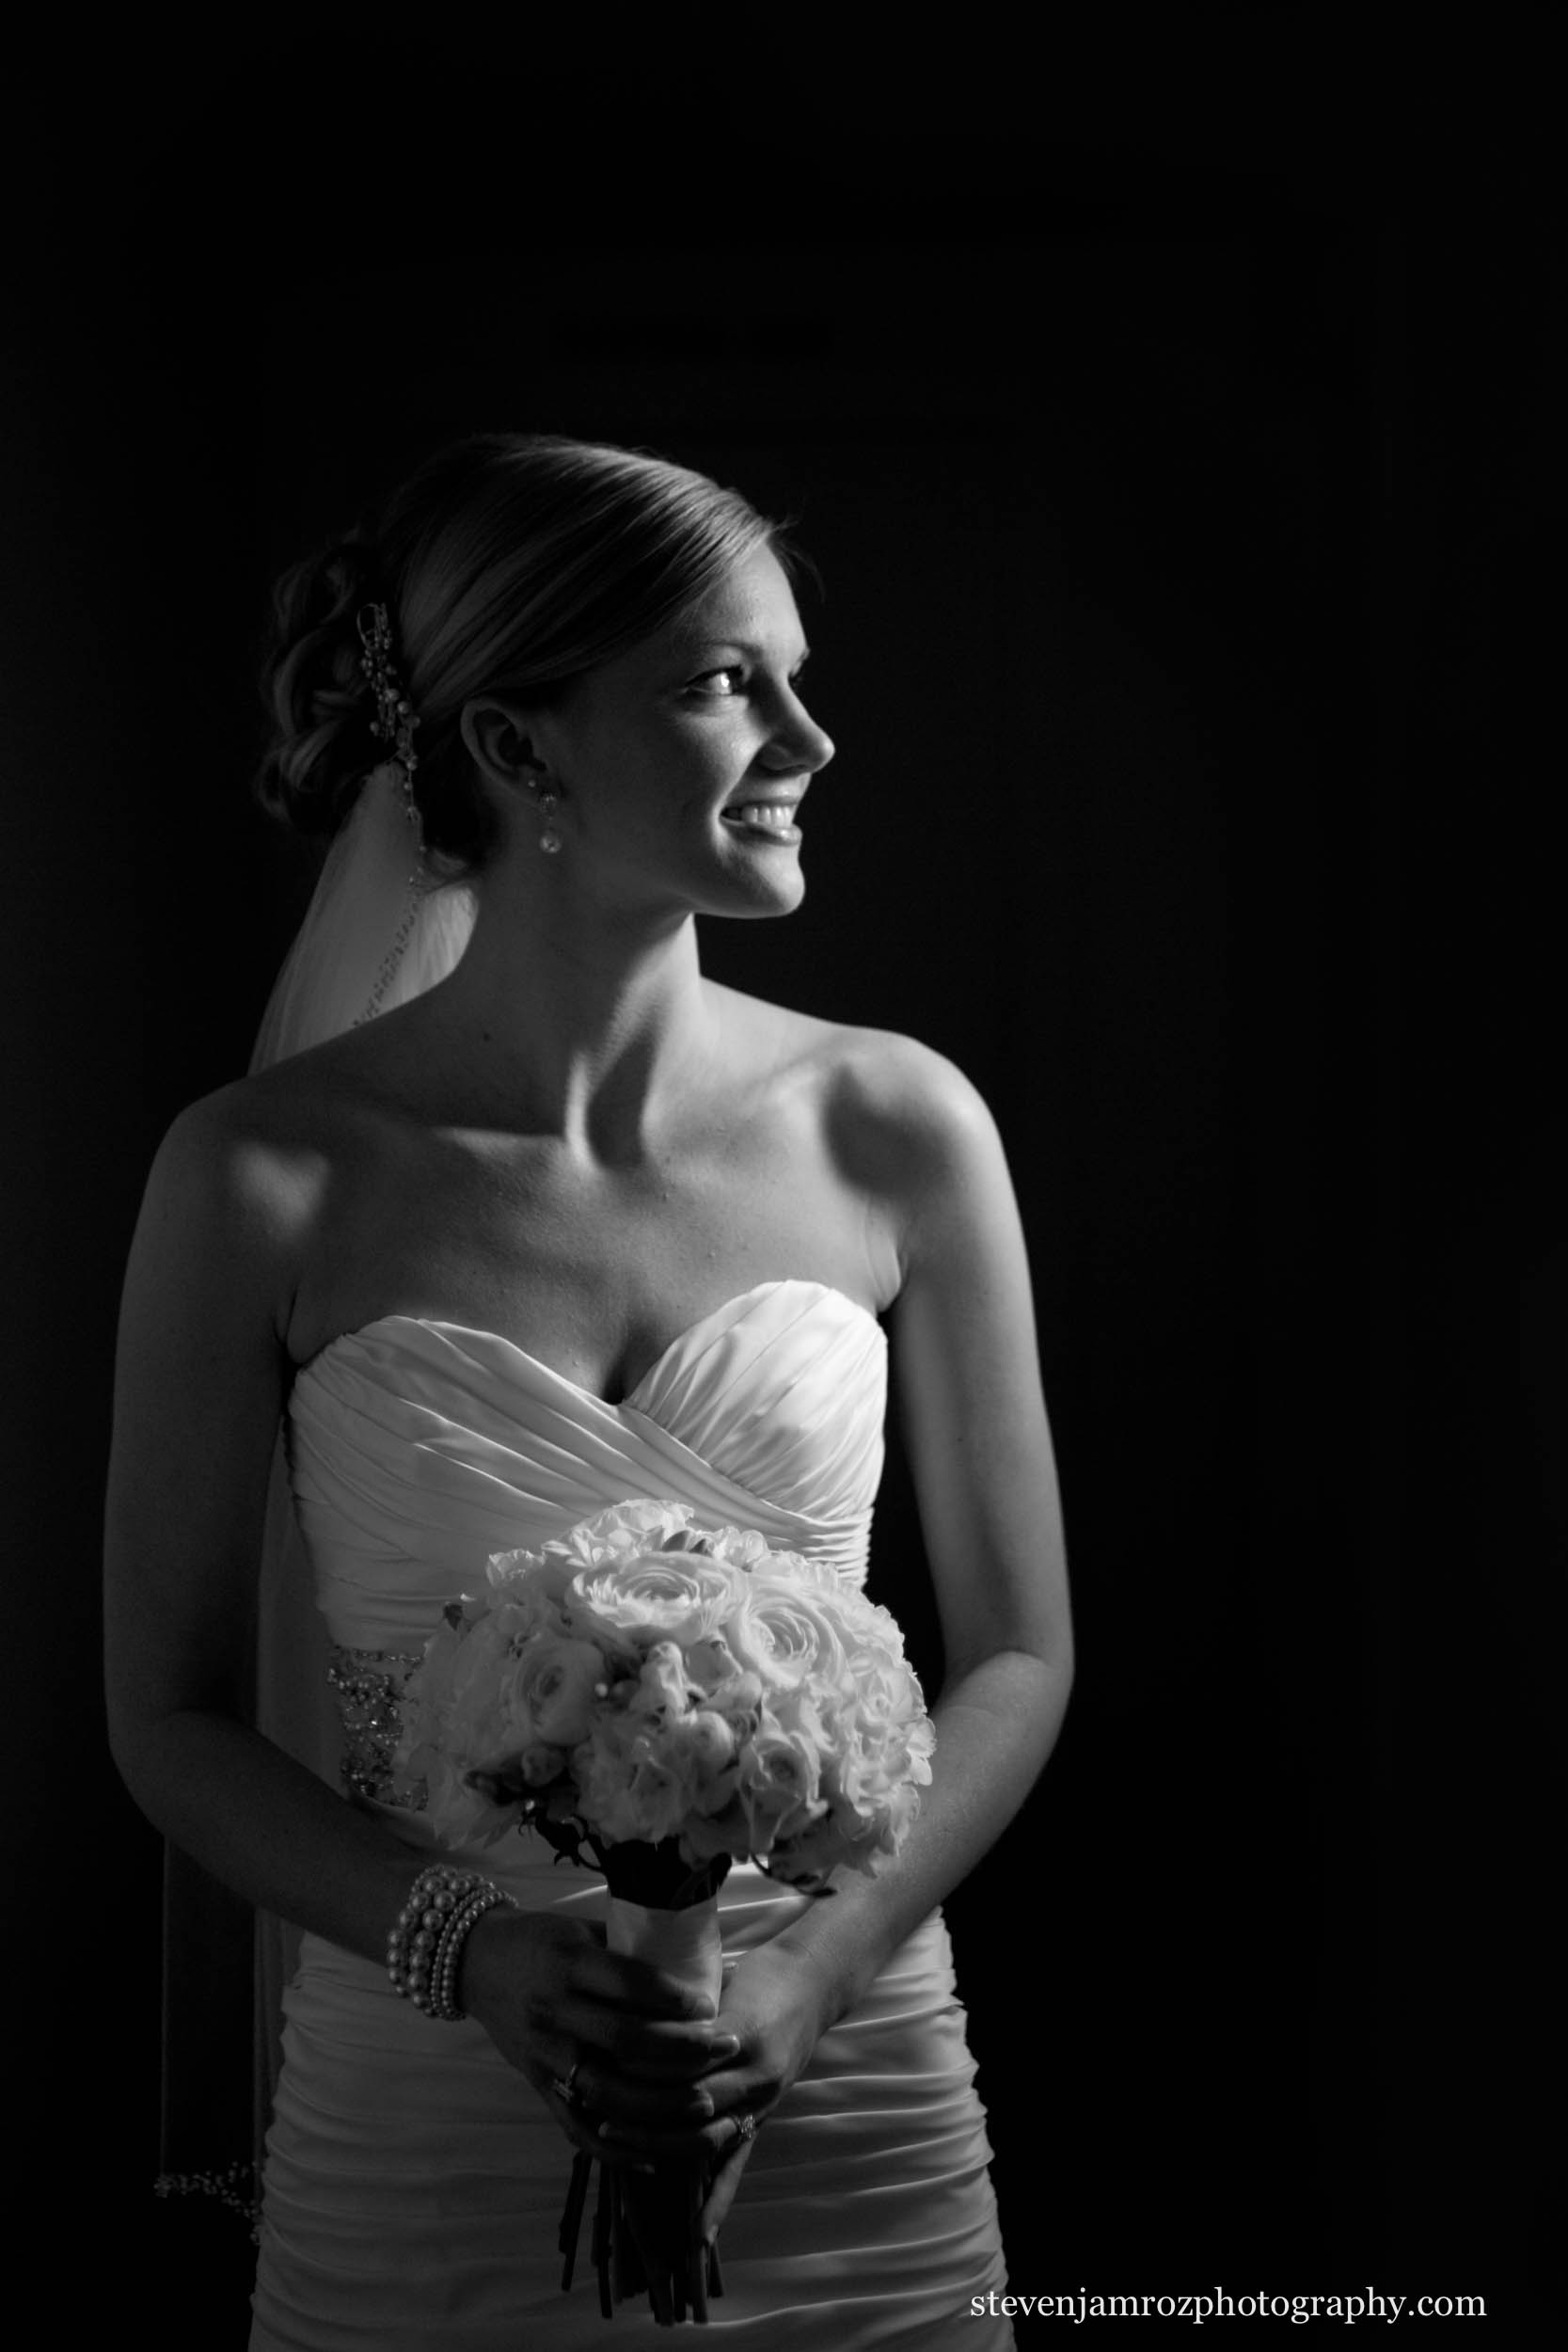 white-and-black-bride-portrait-photography-0940.jpg